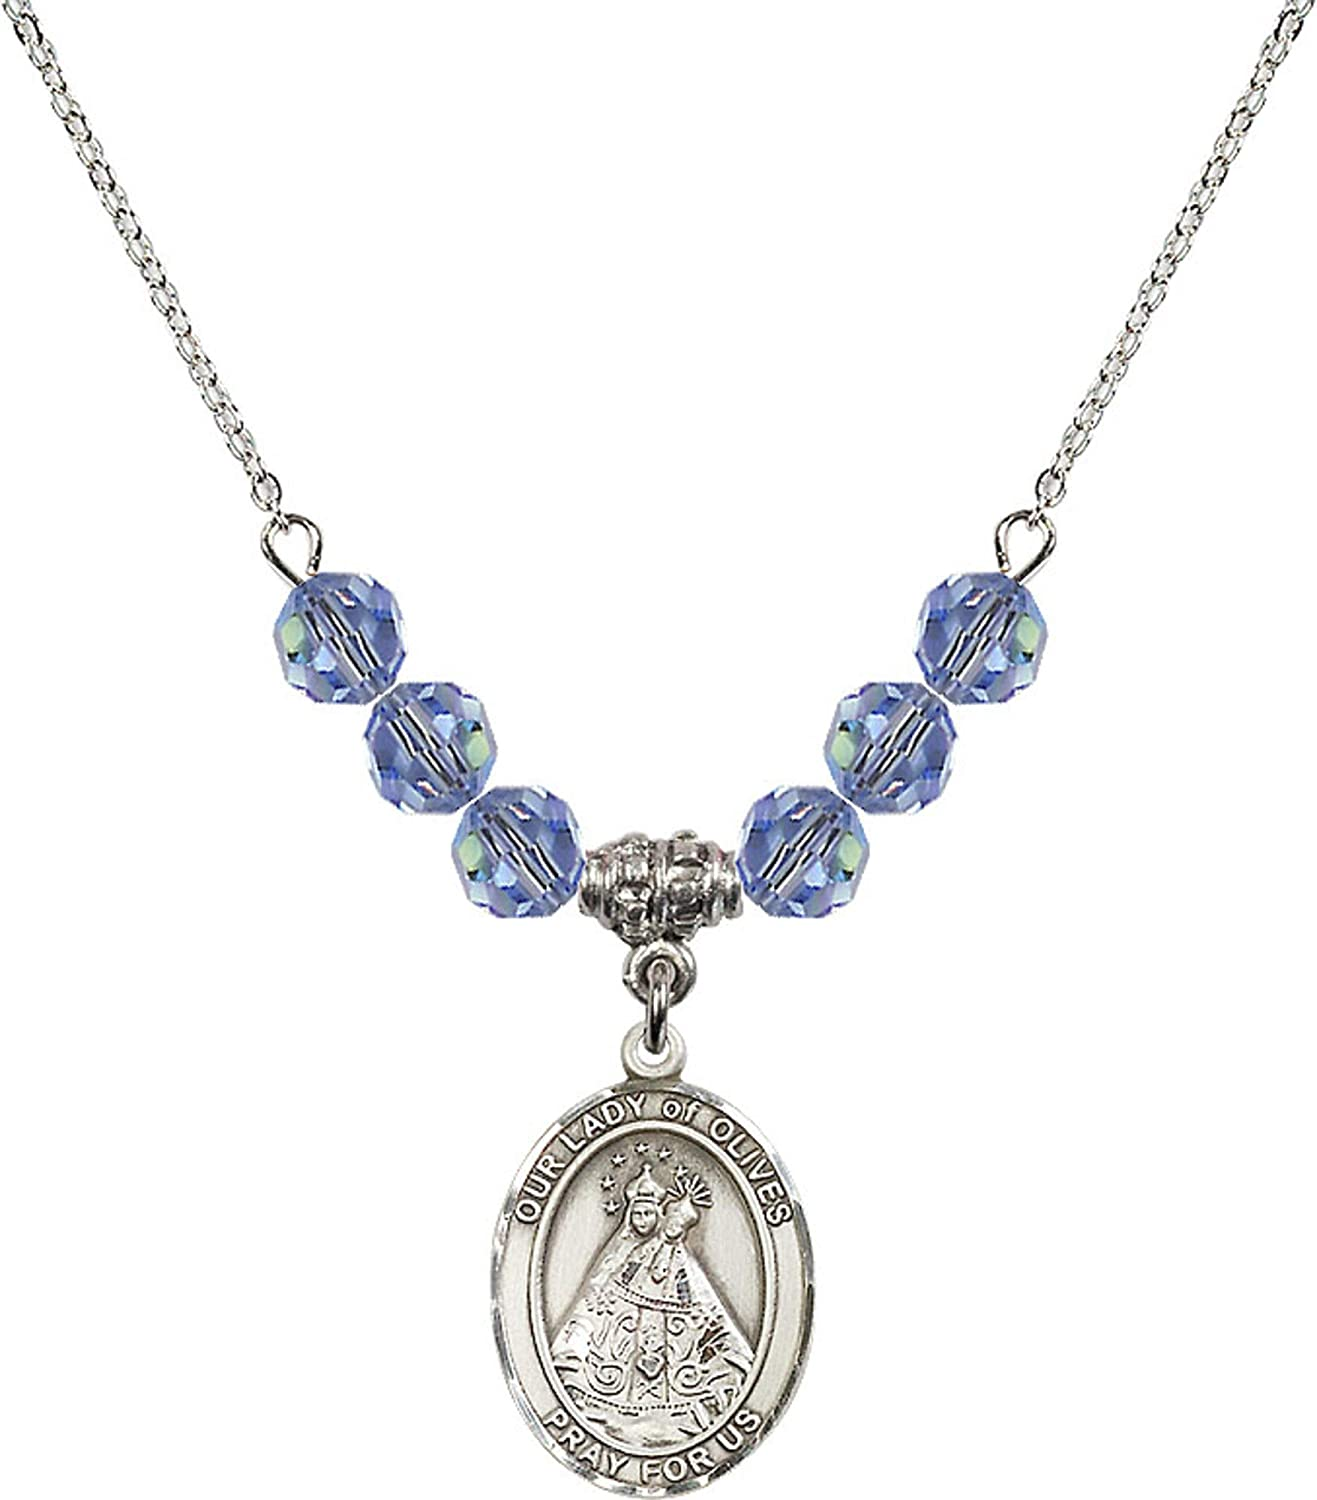 Bonyak Jewelry 18 Inch Rhodium Plated Necklace w// 6mm Light Blue September Birth Month Stone Beads and Our Lady of Olives Charm